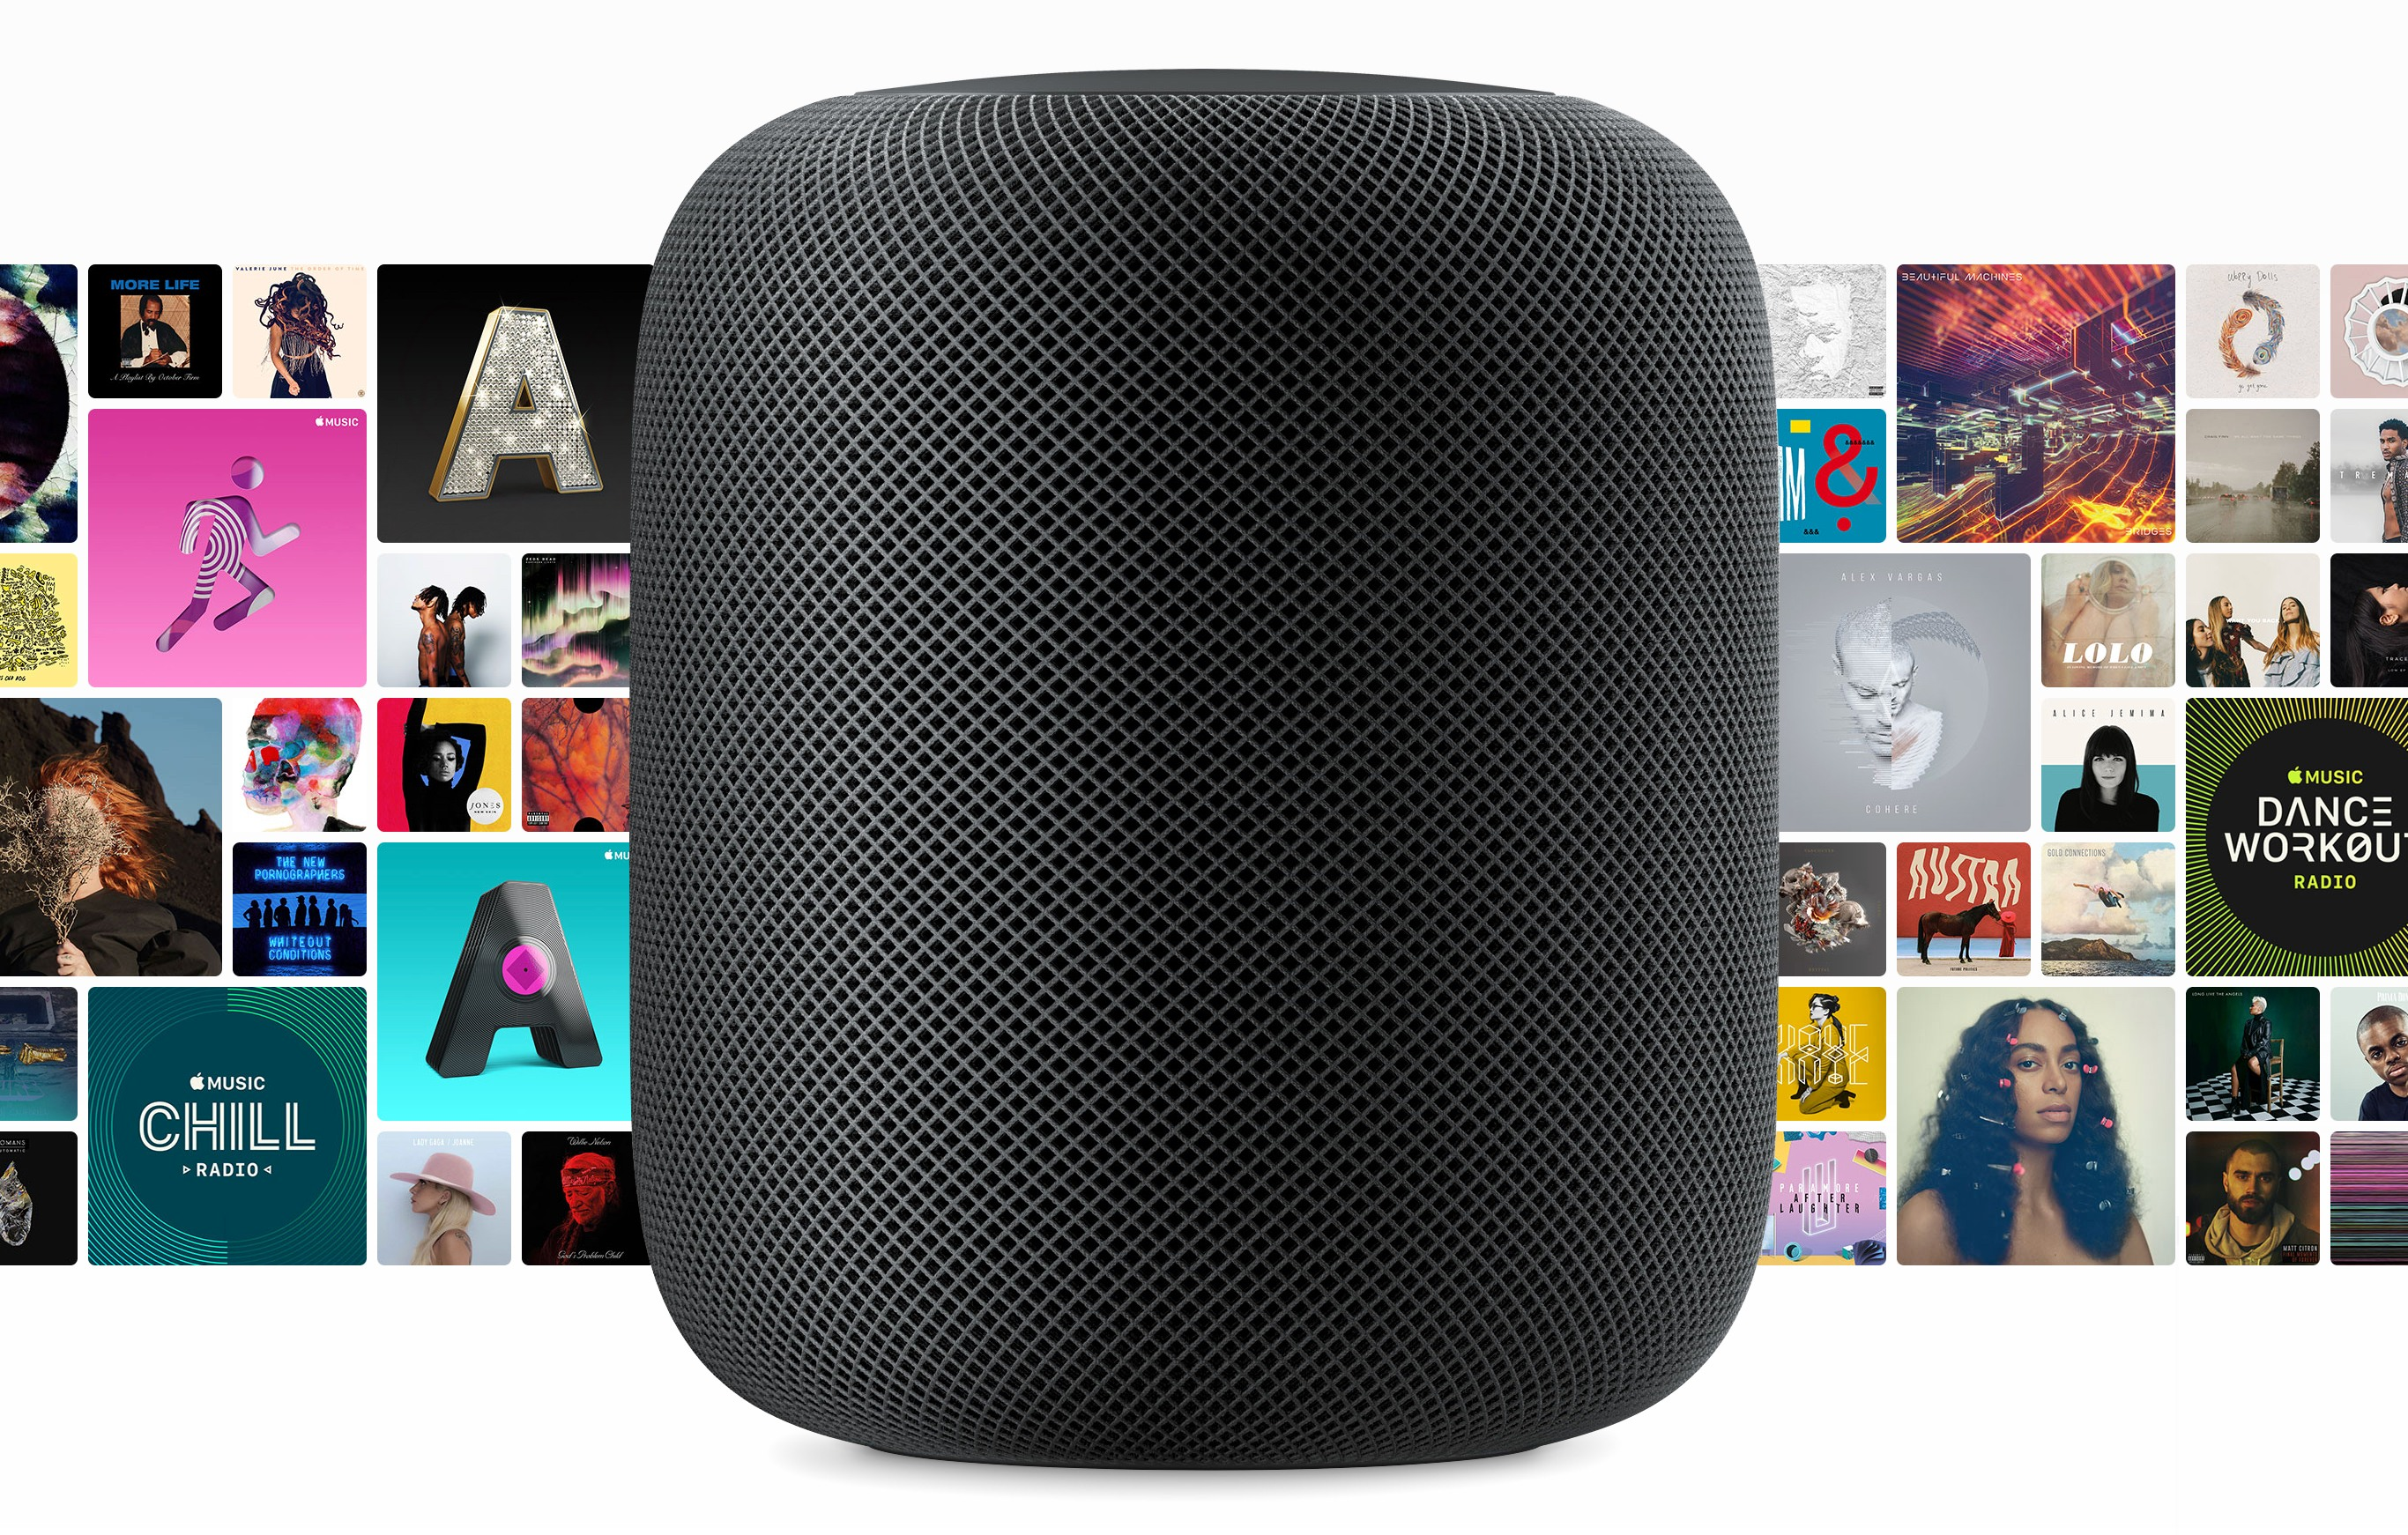 Apple Posts HomePod Help Page Ahead of First Deliveries